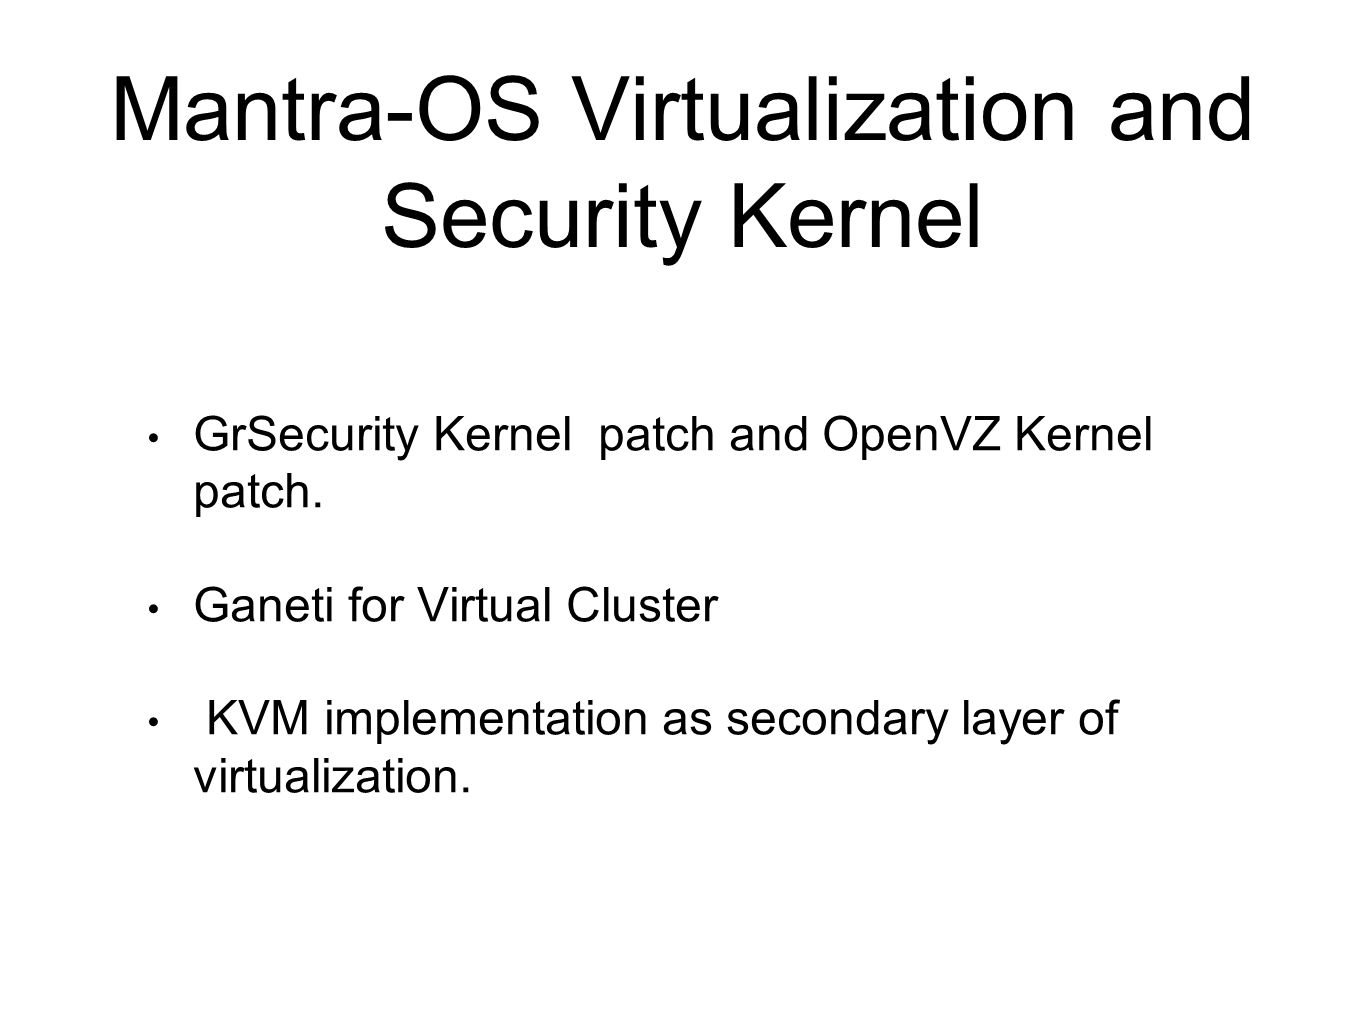 Mantra-OS Virtualization and Security Kernel GrSecurity Kernel patch and OpenVZ Kernel patch. Ganeti for Virtual Cluster KVM implementation as seconda